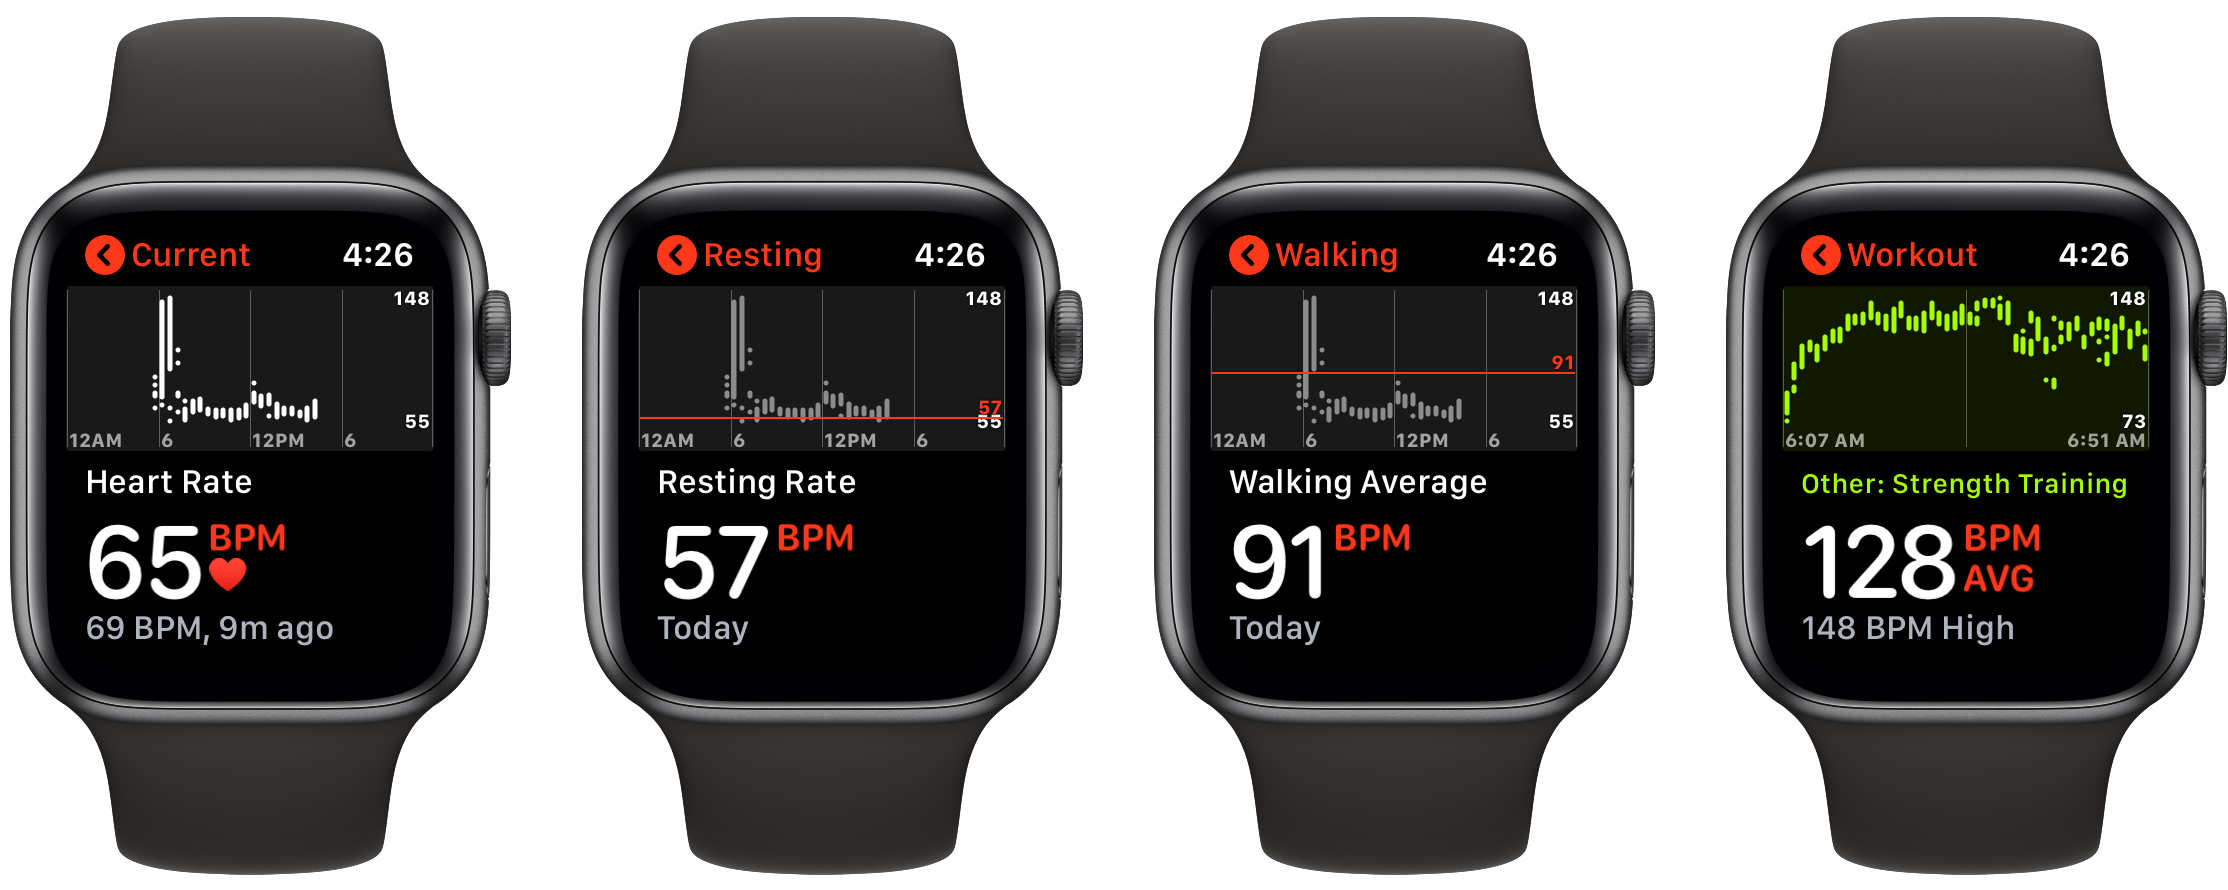 How to see heart rate history Apple Watch